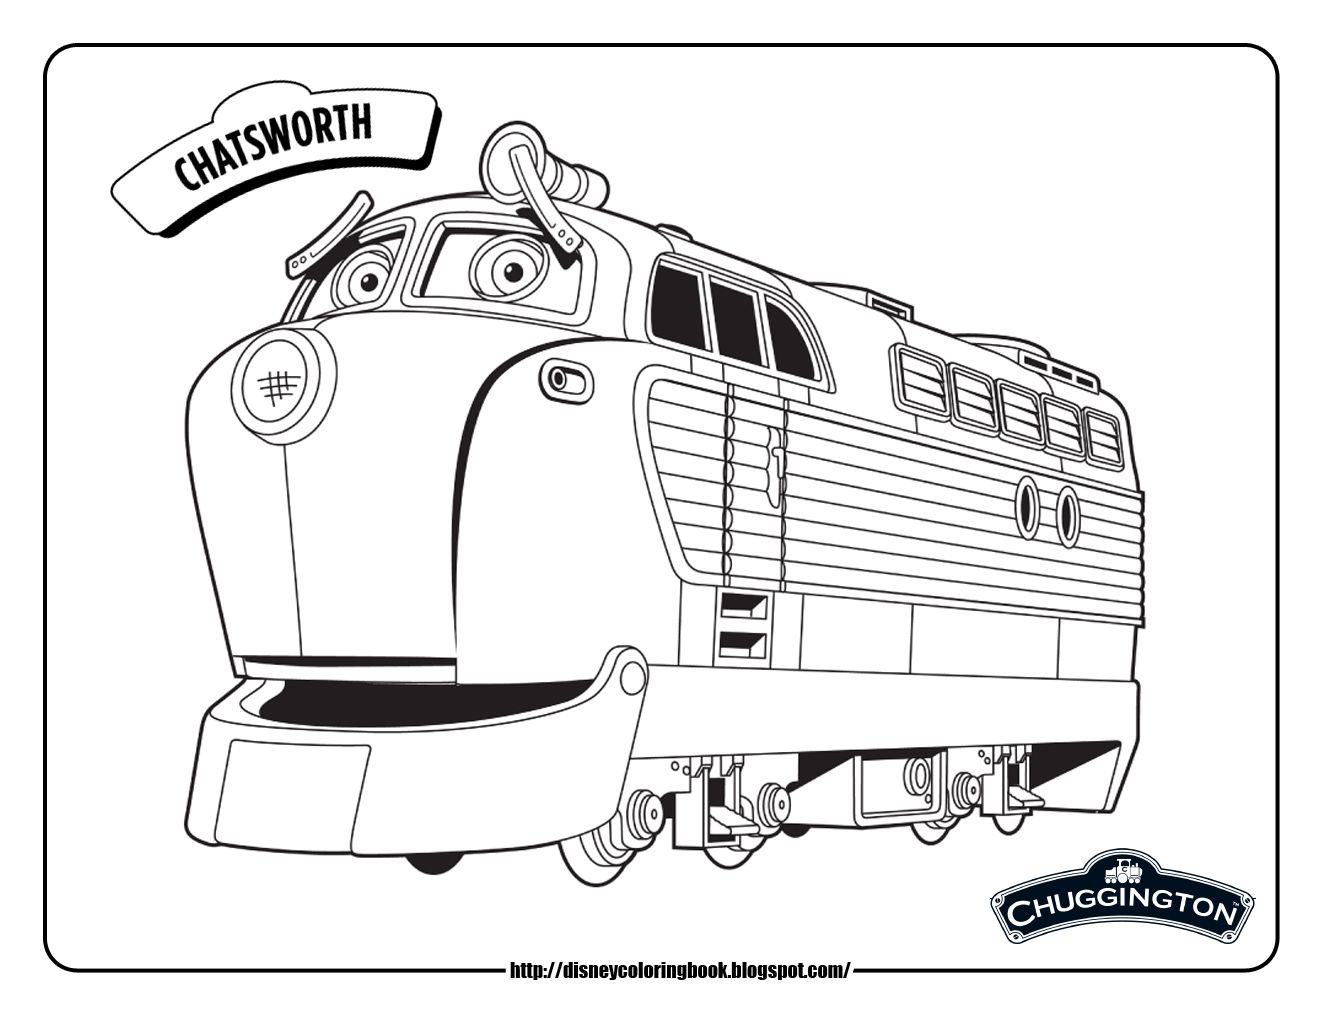 Chuggington 1 Free Disney Coloring